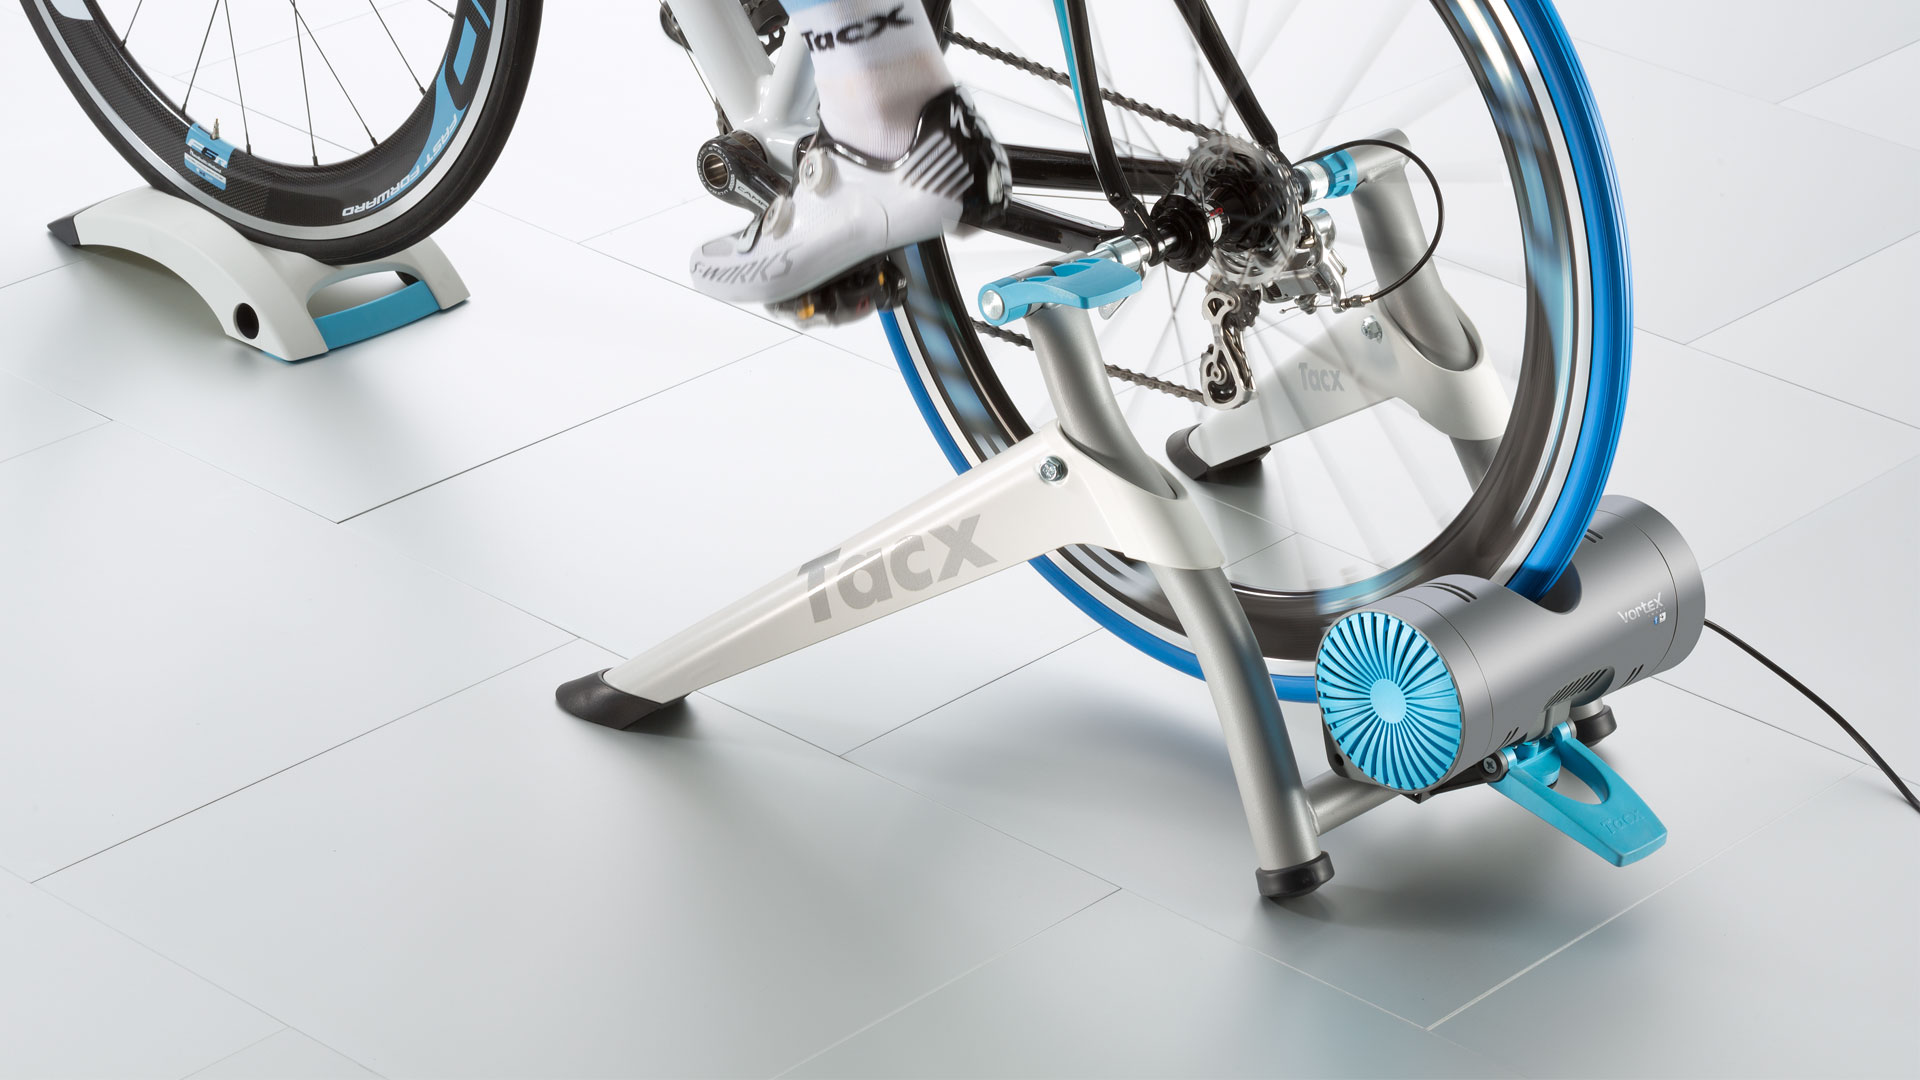 Tacx - Vortex Smart Trainer - Bild 8